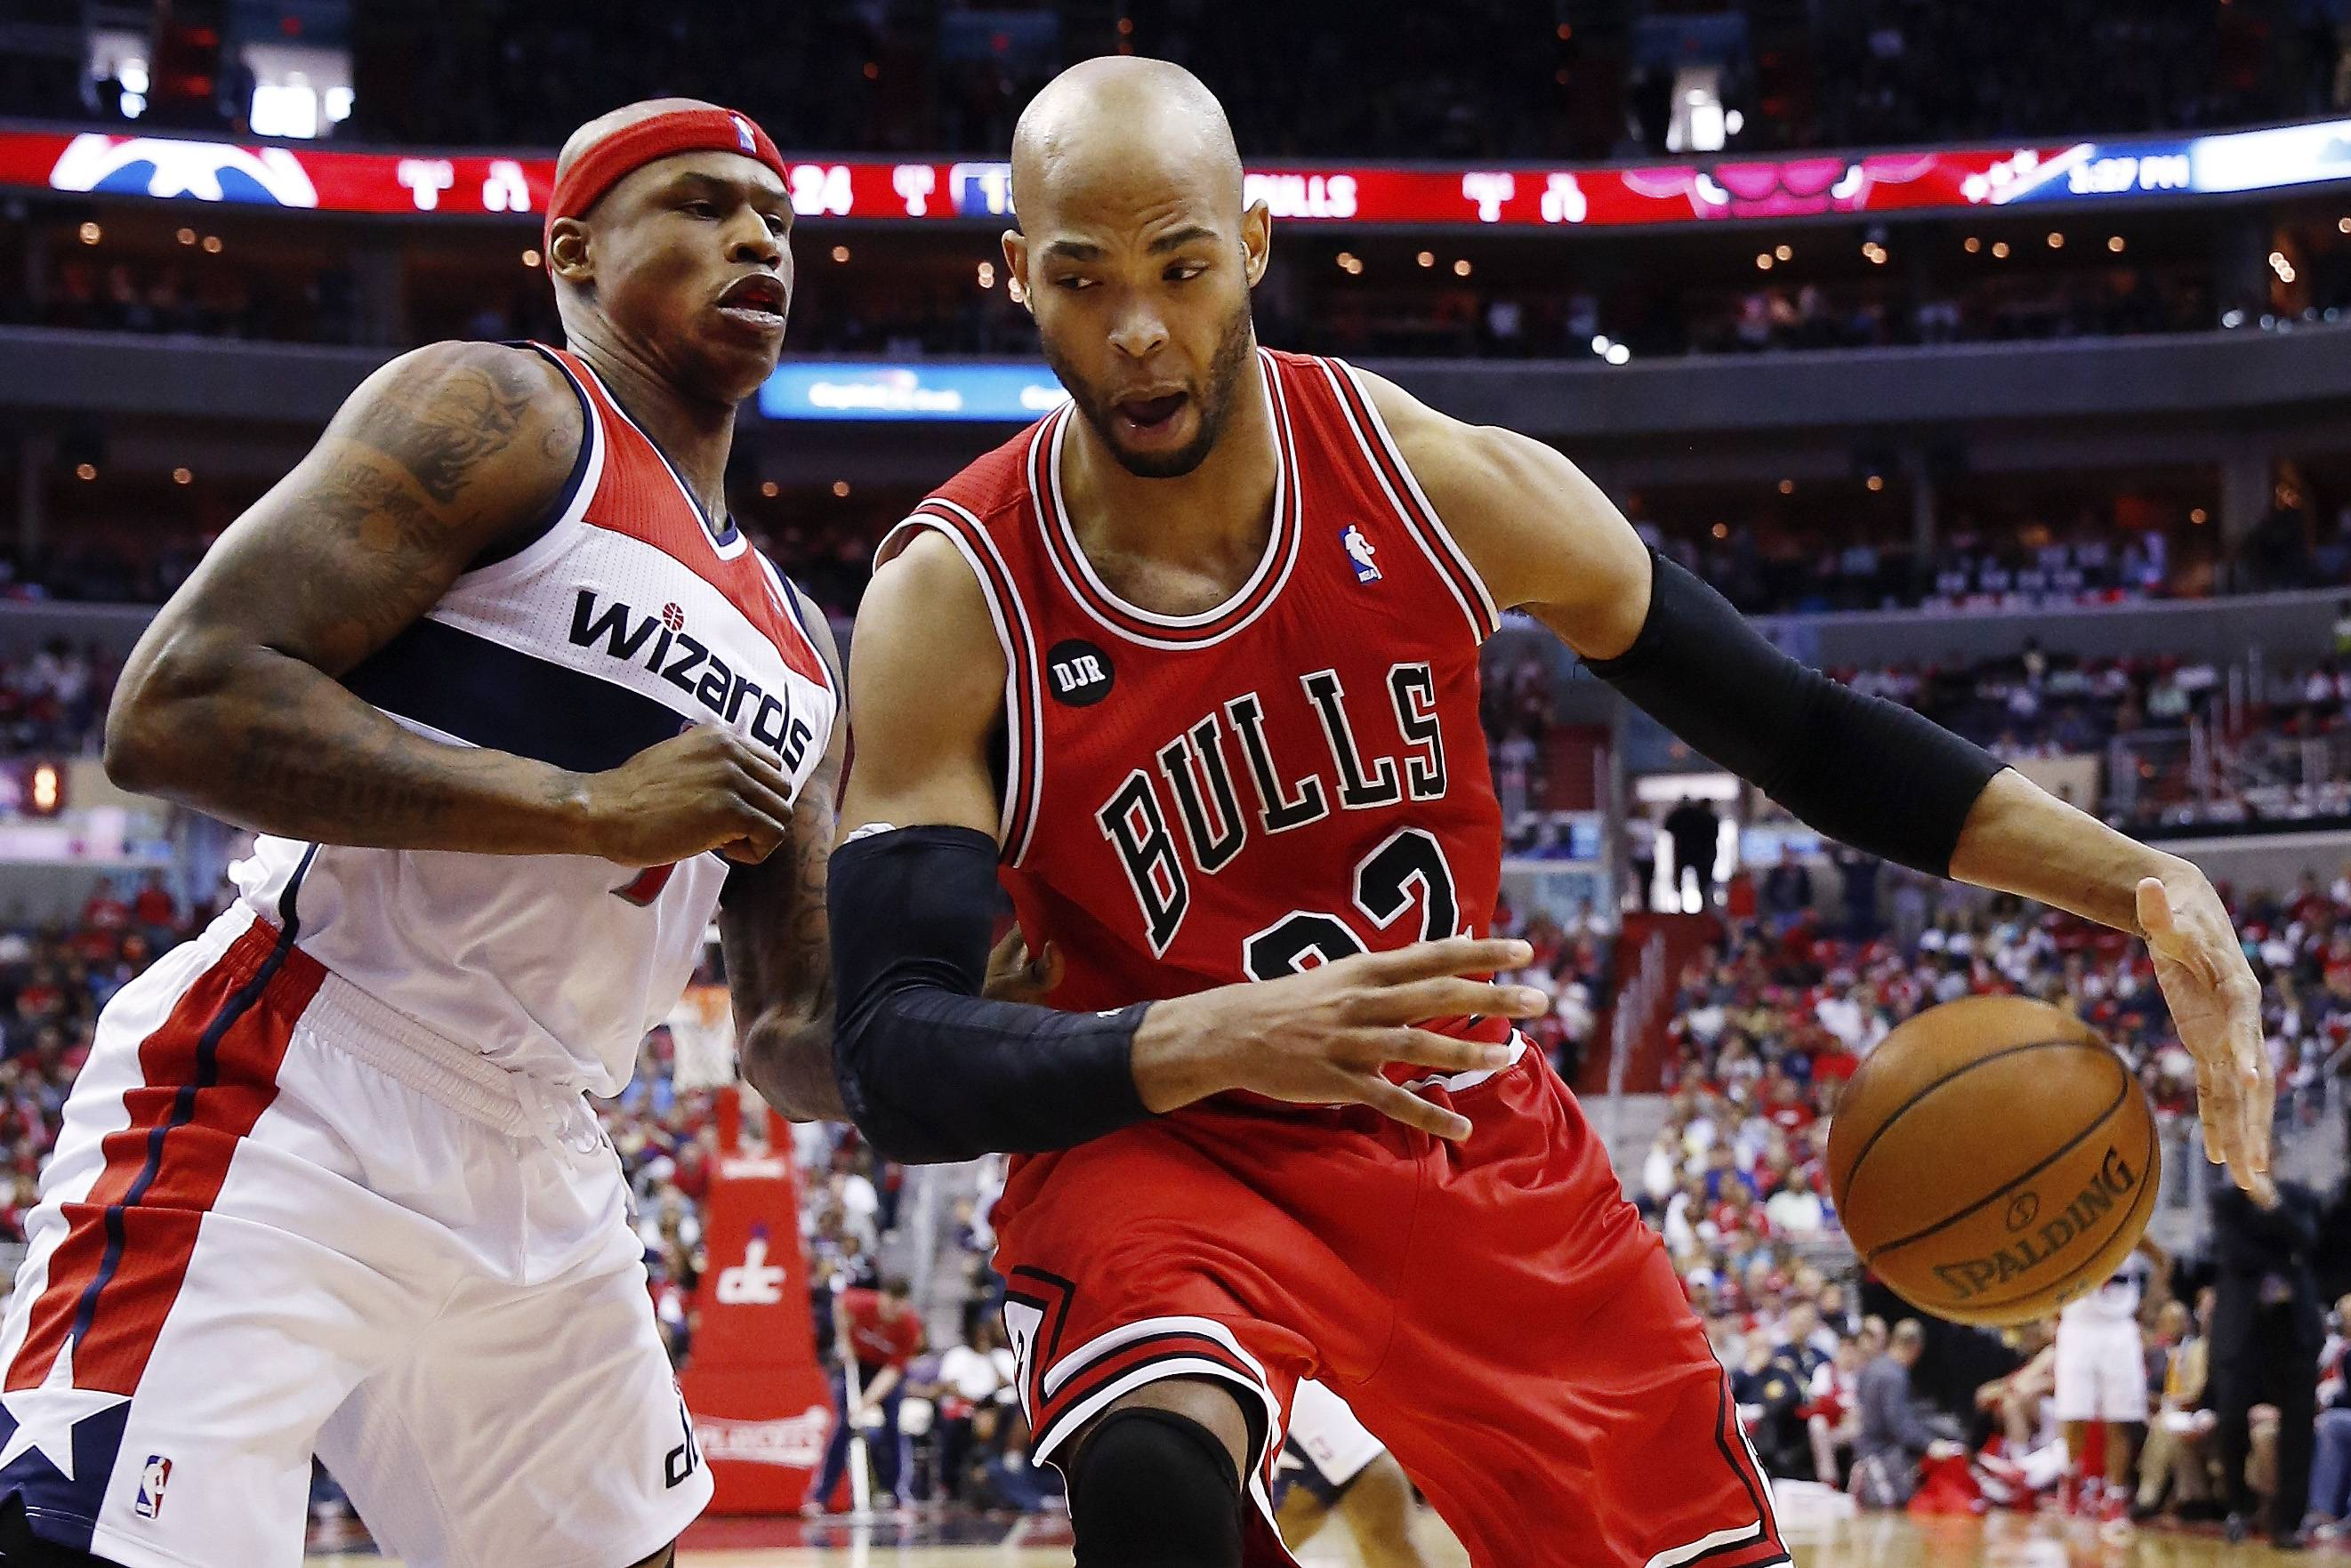 Chicago Bulls forward Taj Gibson (22) says the addition of Pau Gasol gives head coach Tom Thibodeau more options to win matchups. Gibson also said he's not worried about any trade rumors.